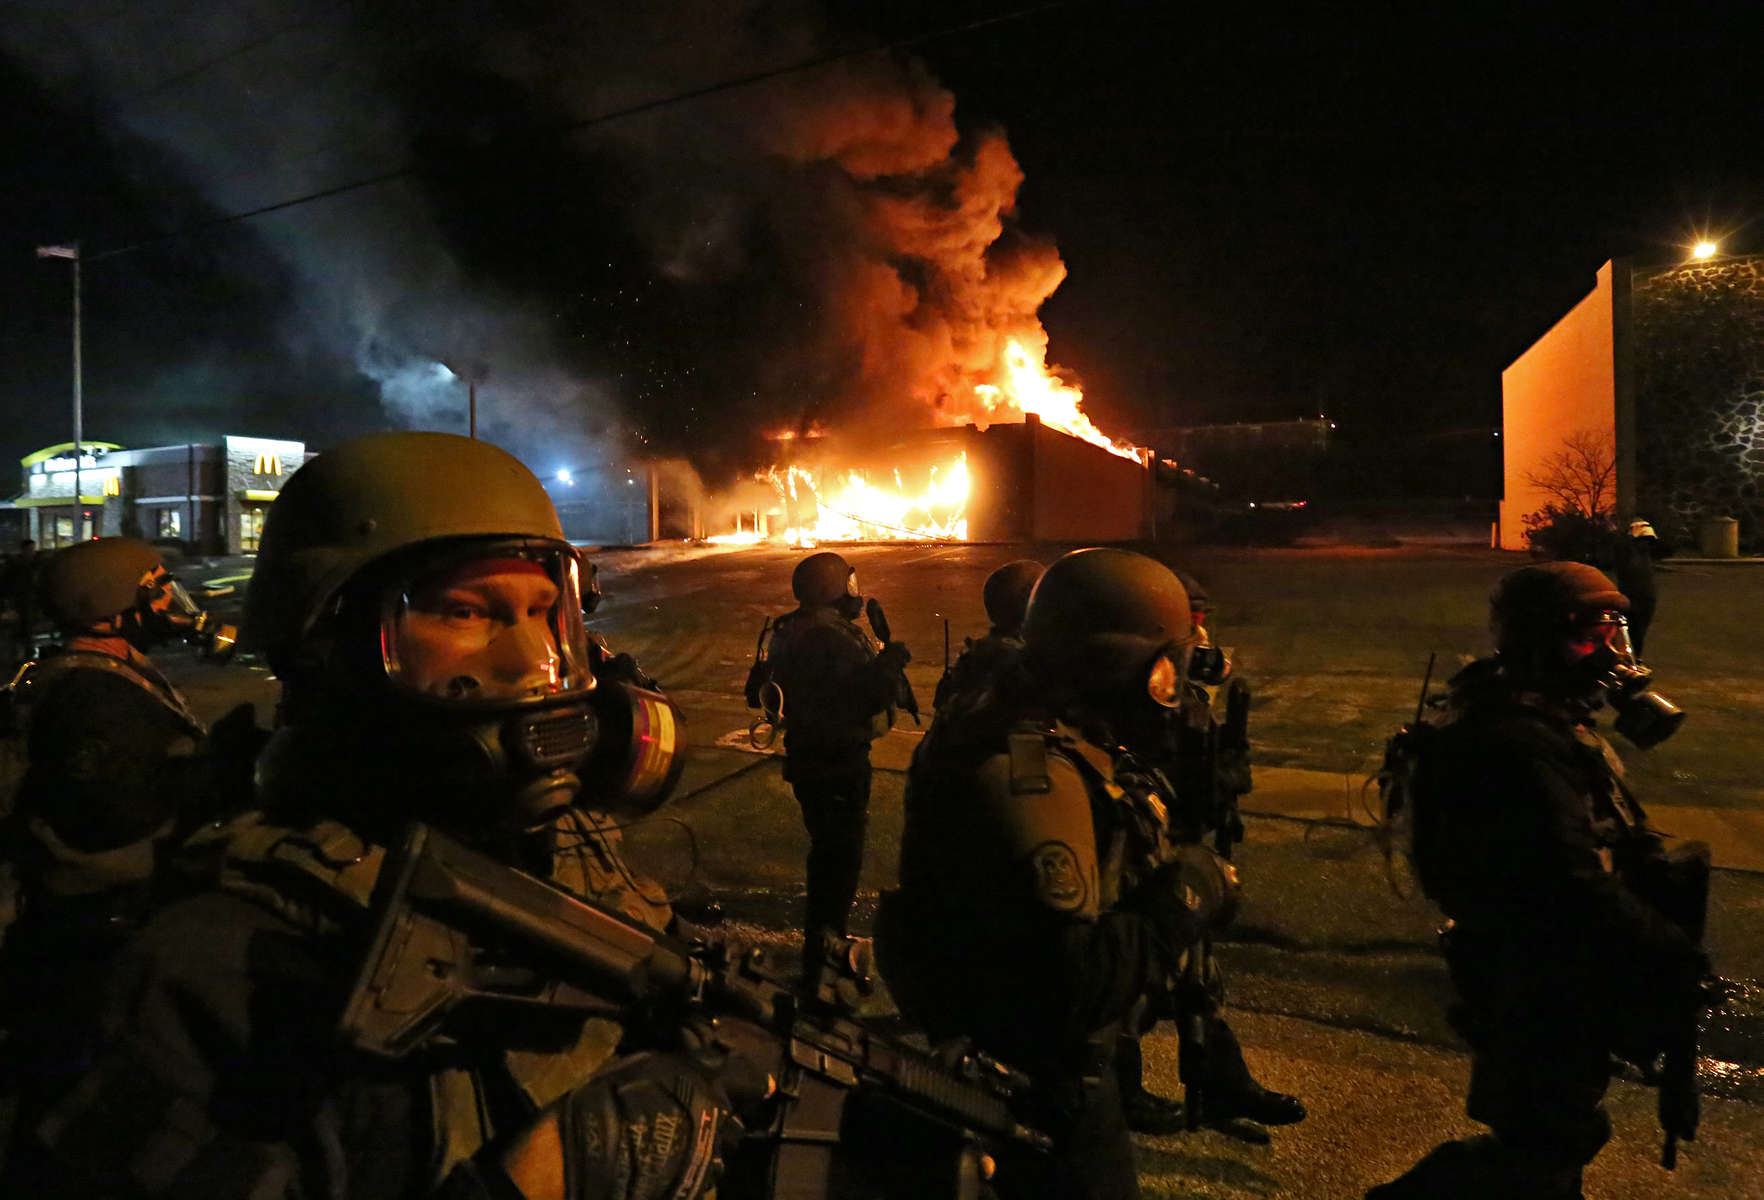 St. Louis County Police tactical team arrive on W. Florissant Avenue to disperse crowd as the Beauty Town store burns on Monday, Nov. 24, 2014. Photo By David Carson, dcarson@post-dispatch.com